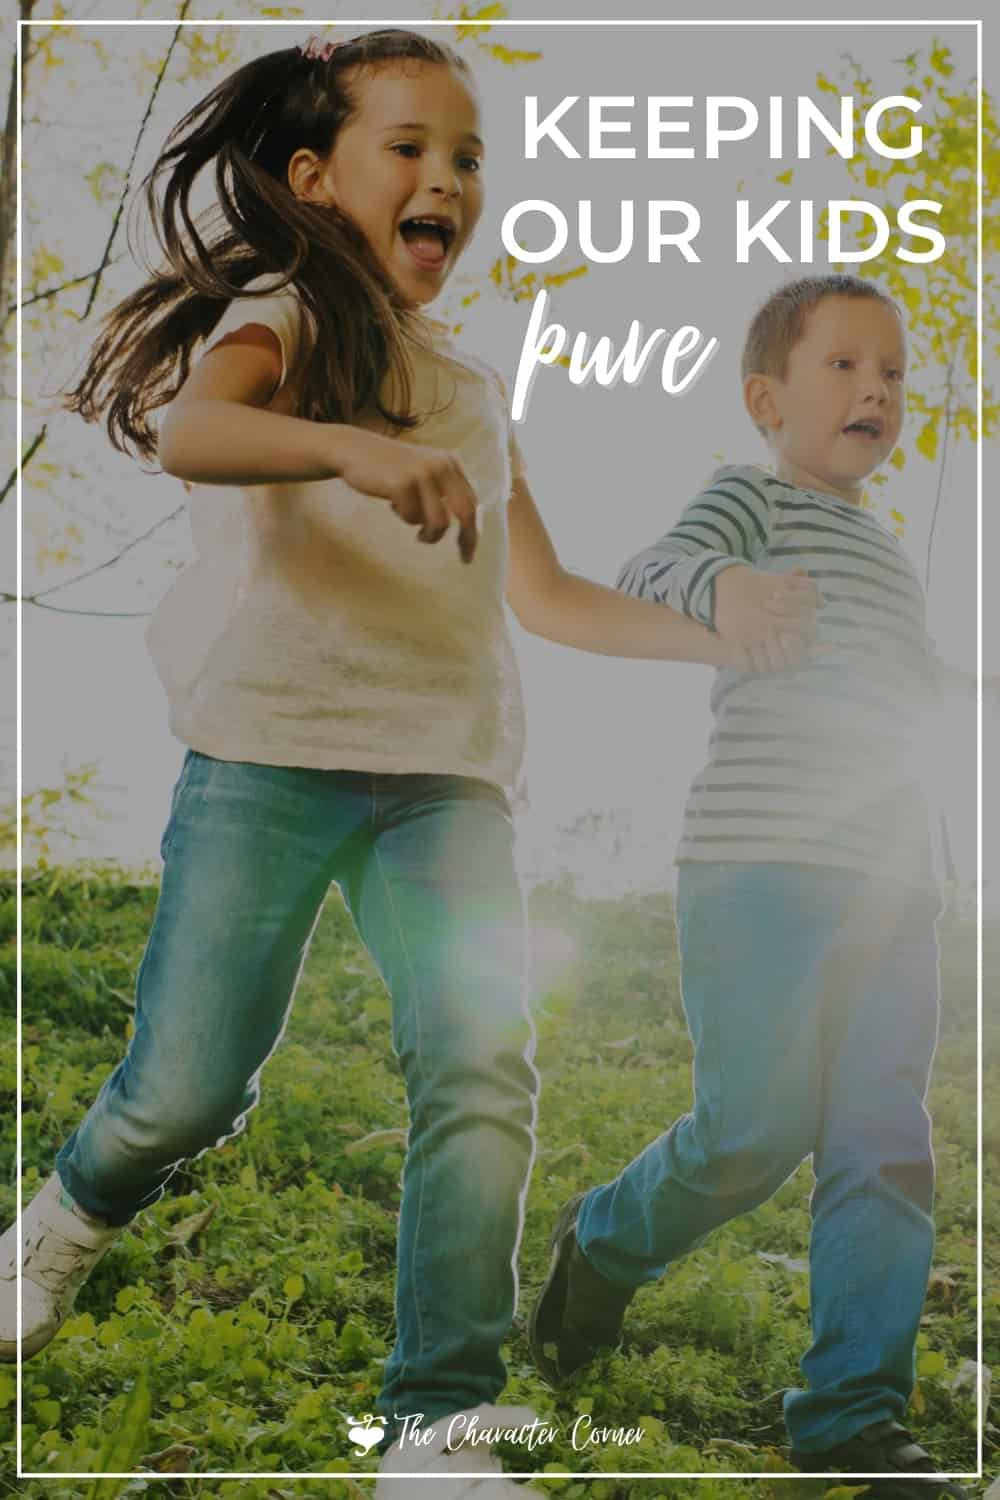 how do we keep our kids pure? here are kids running together happy and text on image reads keeping our kids pure the character corner.com